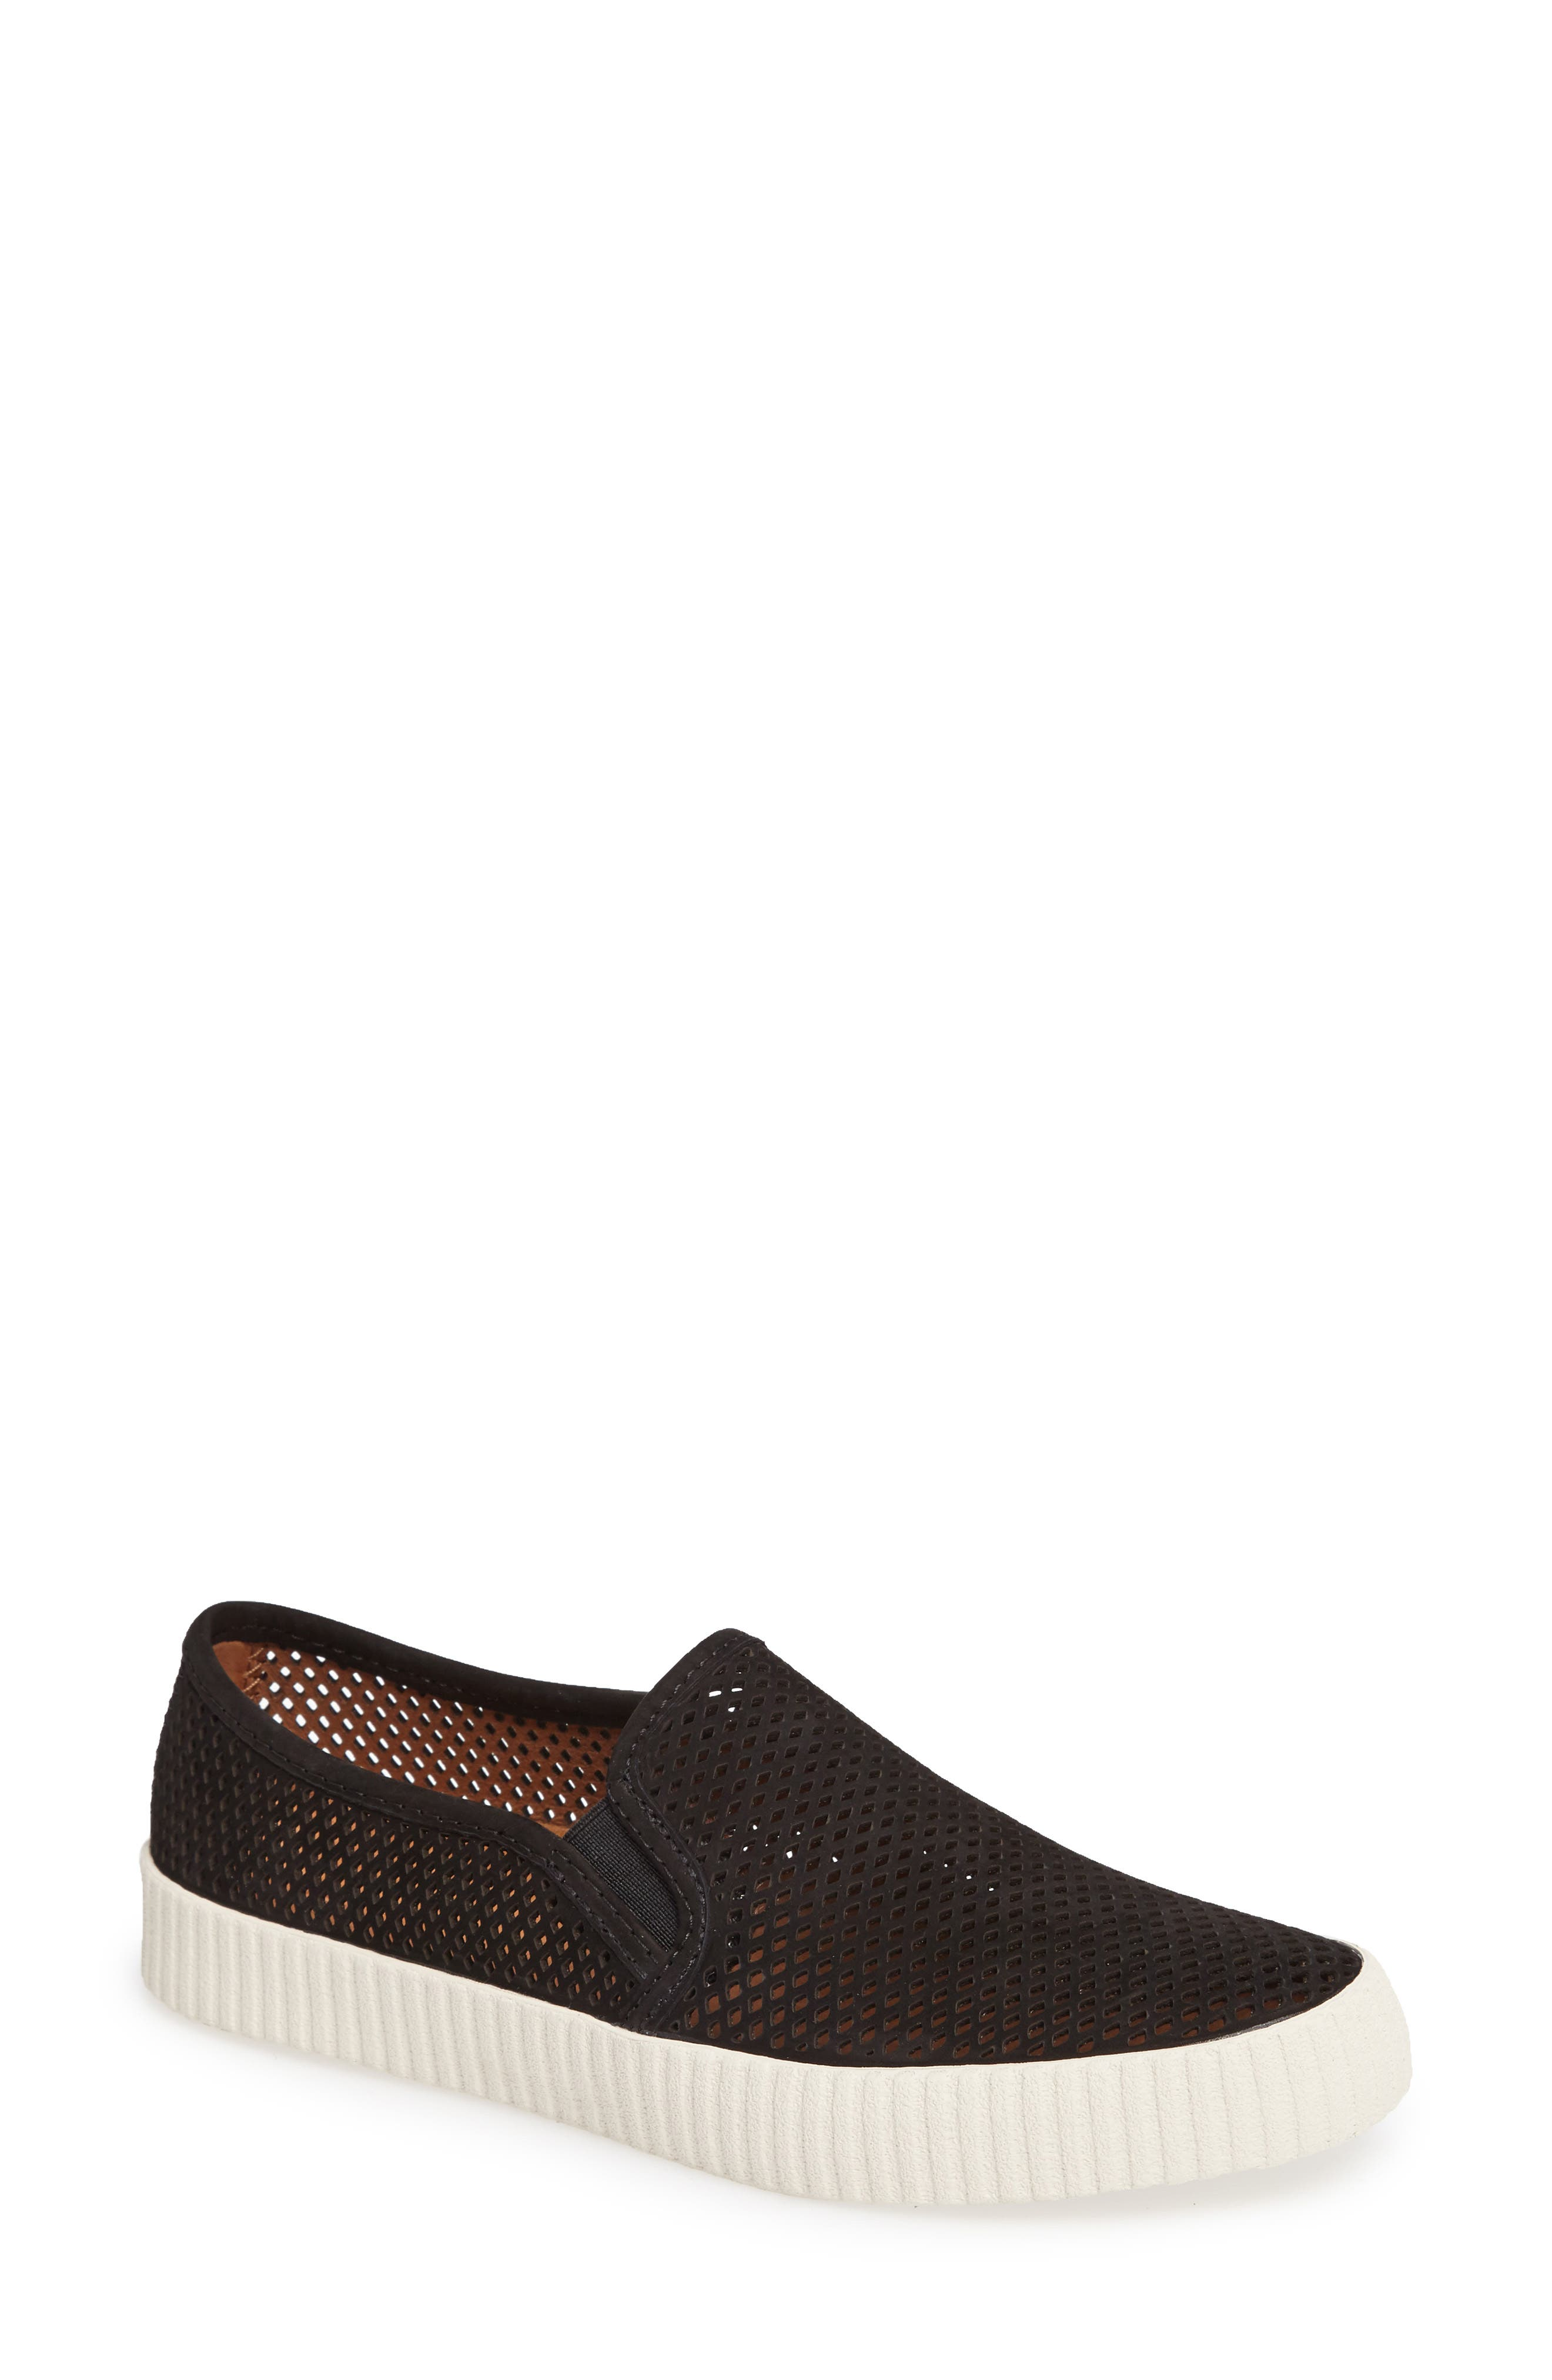 Camille Perforated Slip-On Sneaker,                         Main,                         color, 001